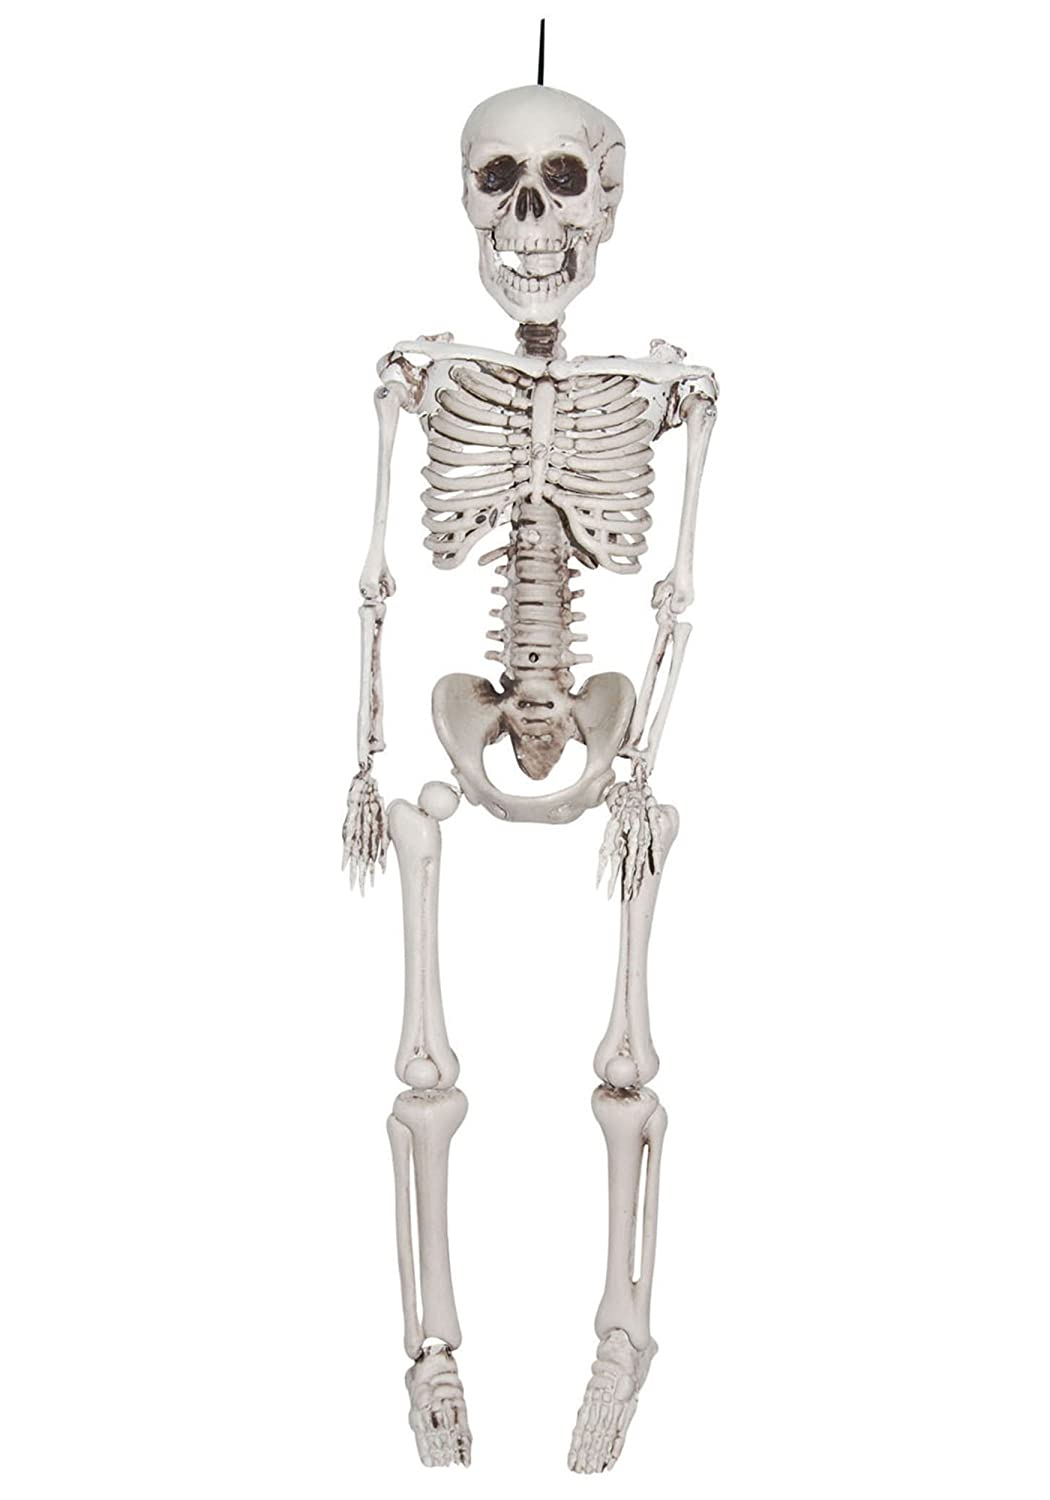 amazoncom 20 inch plastic realistic skeleton standard toys games - Skeleton Decorations